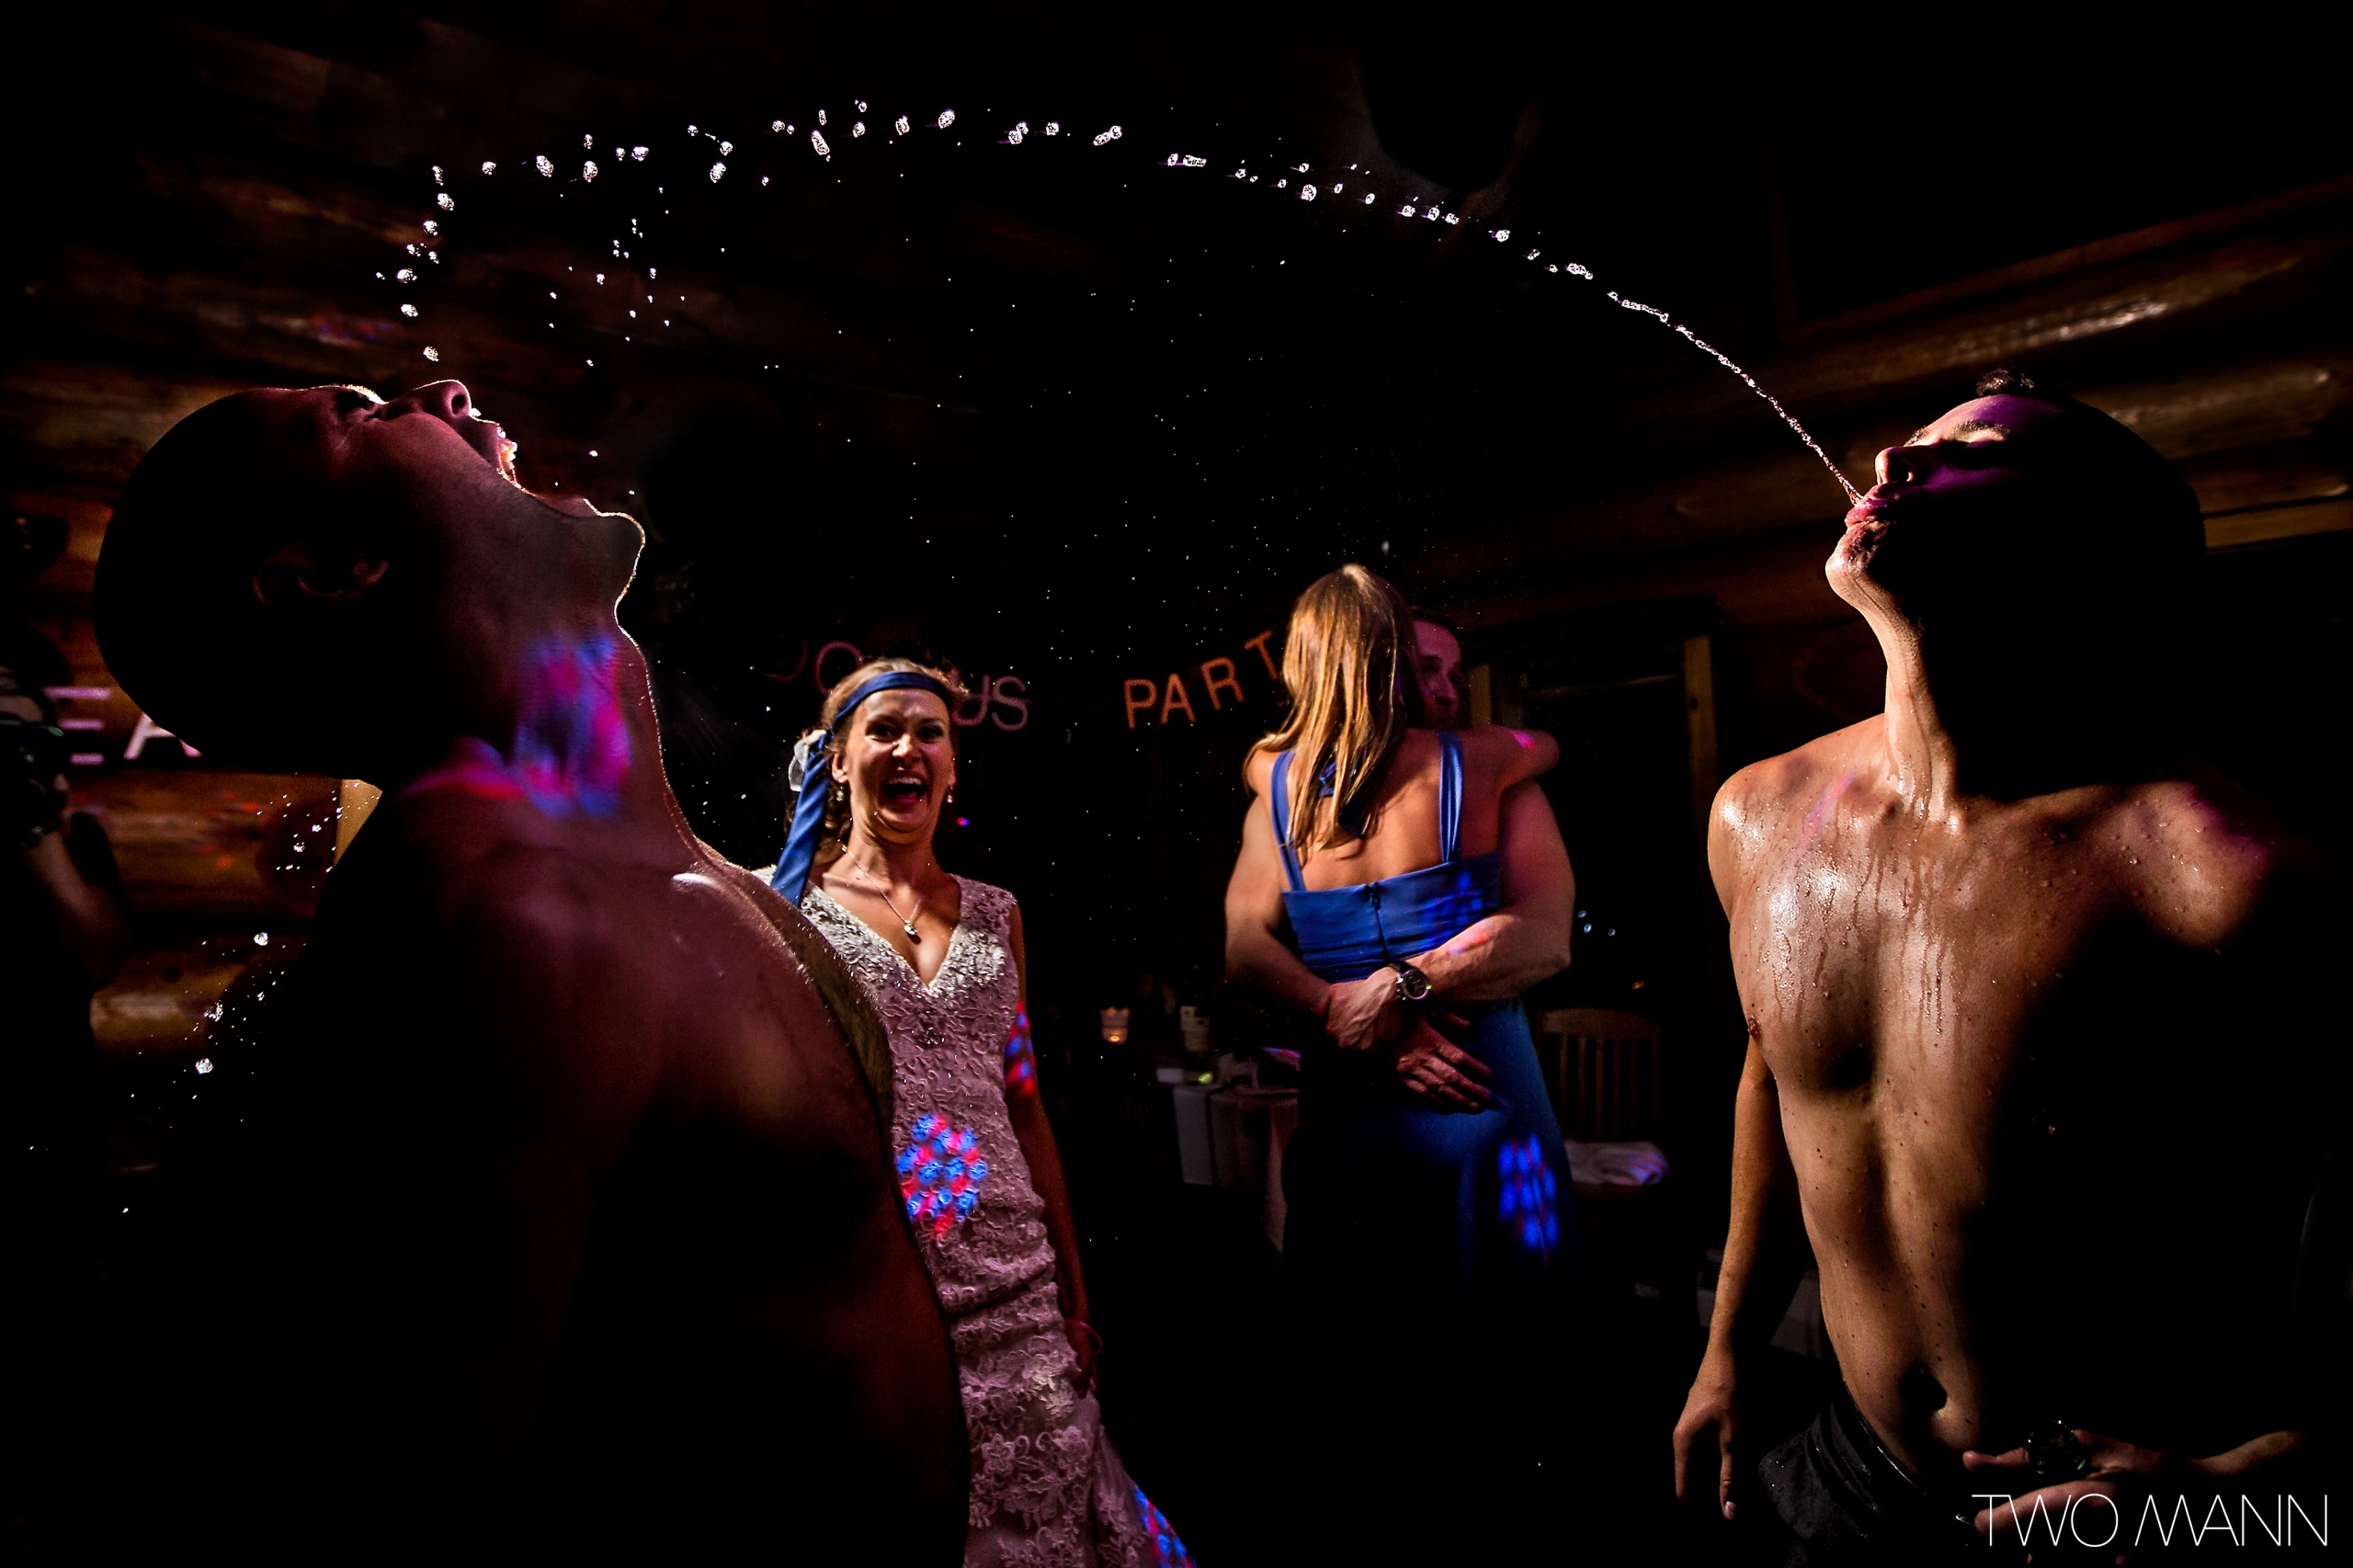 a man spraying water from the mouth at a wedding reception